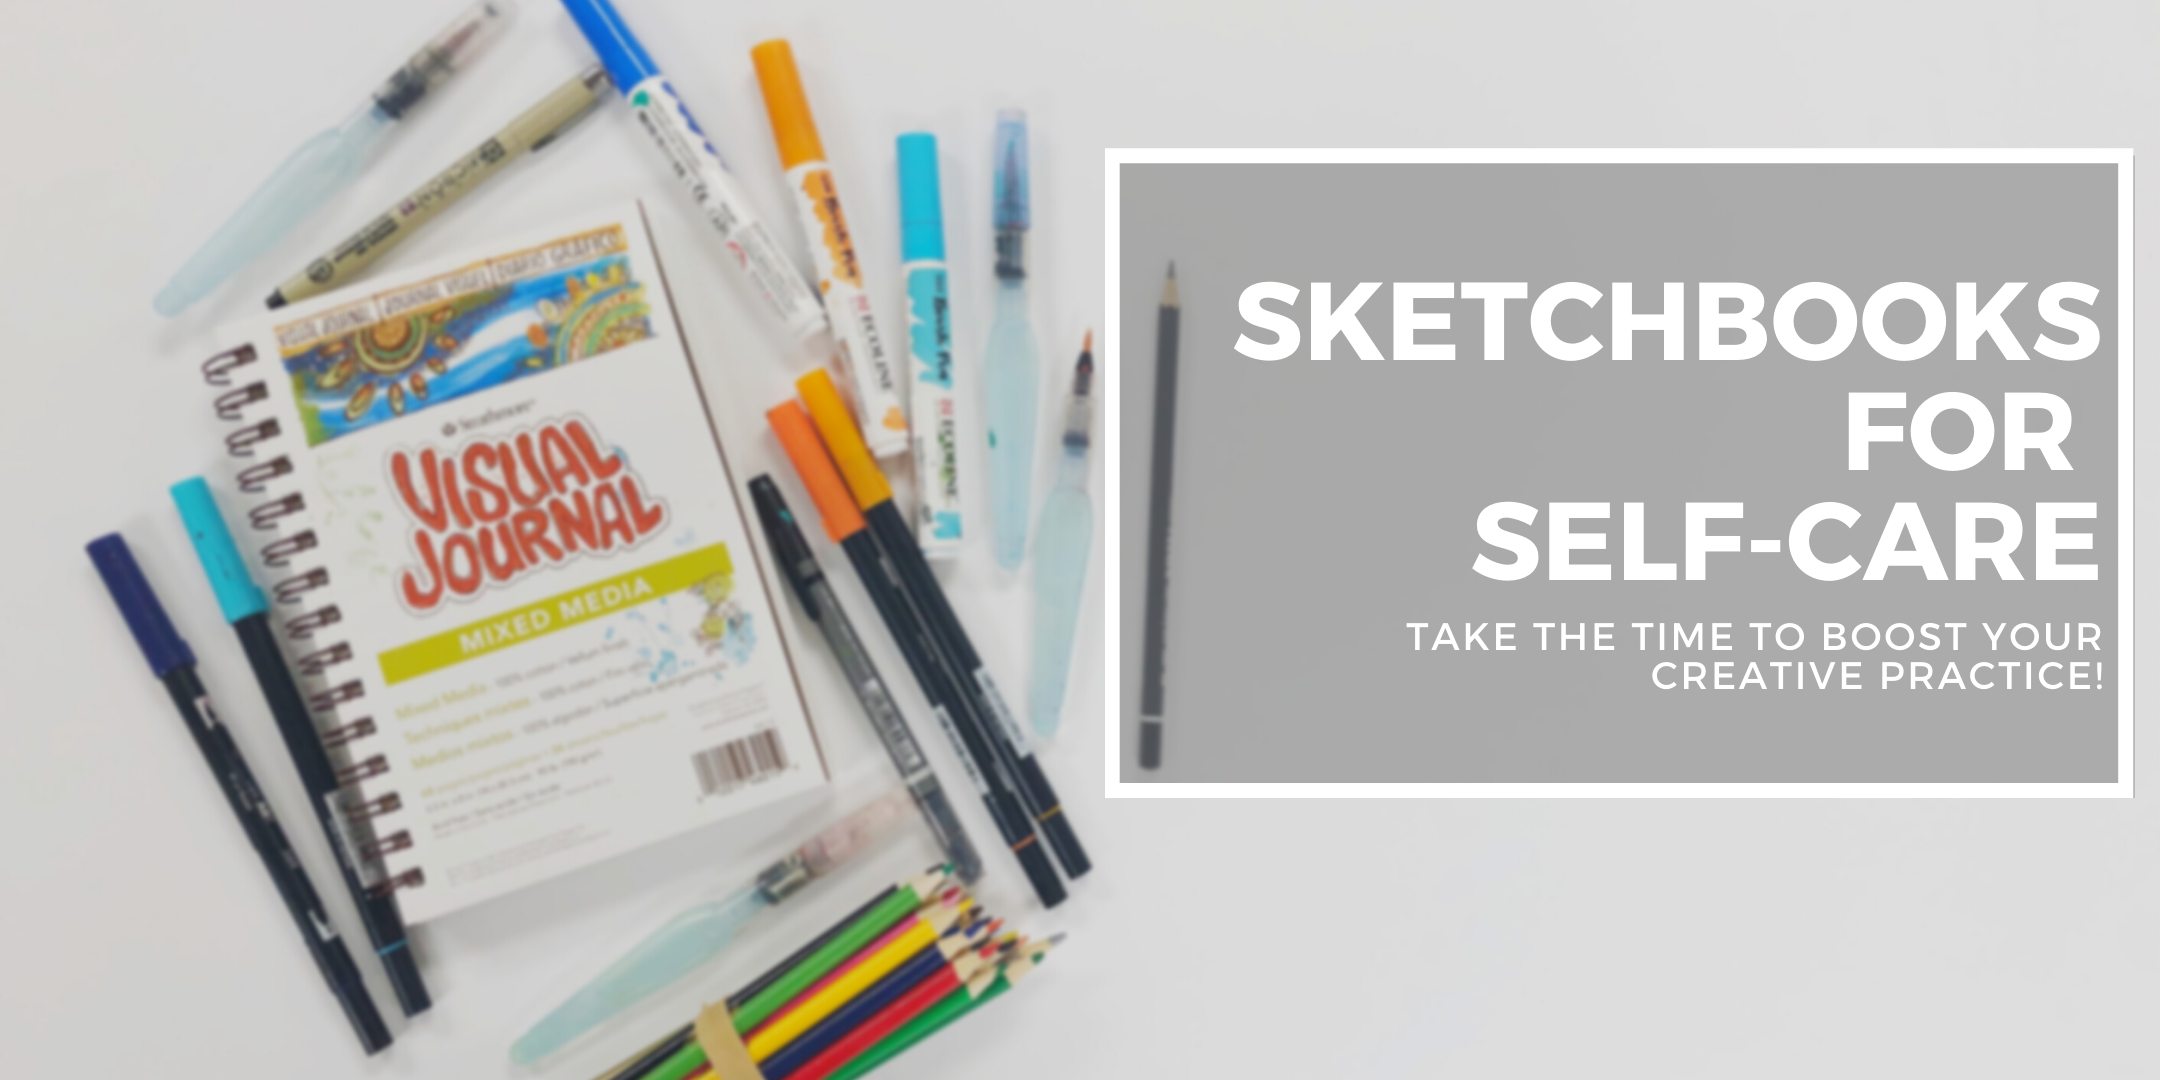 Sketchbooks for Self-Care